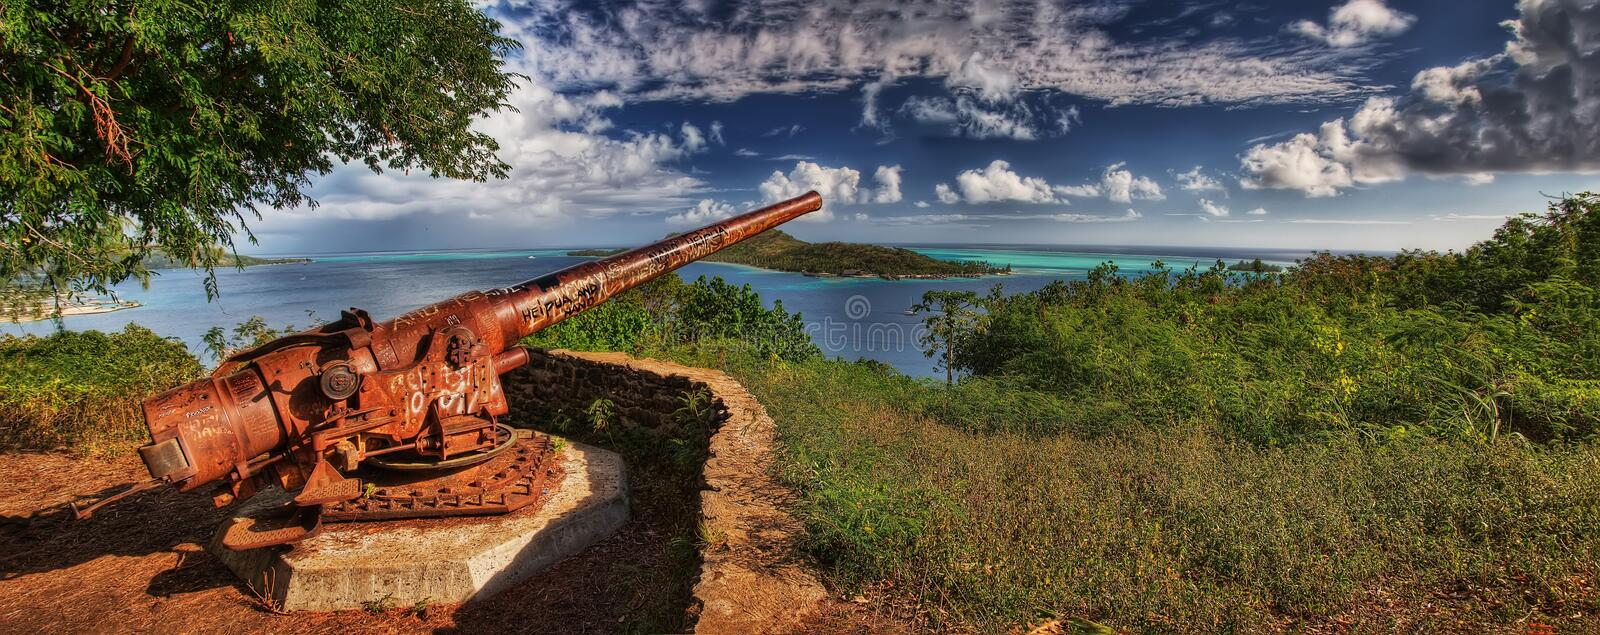 Bora Bora, French Polynesia. Taken in 2015 royalty free stock photo